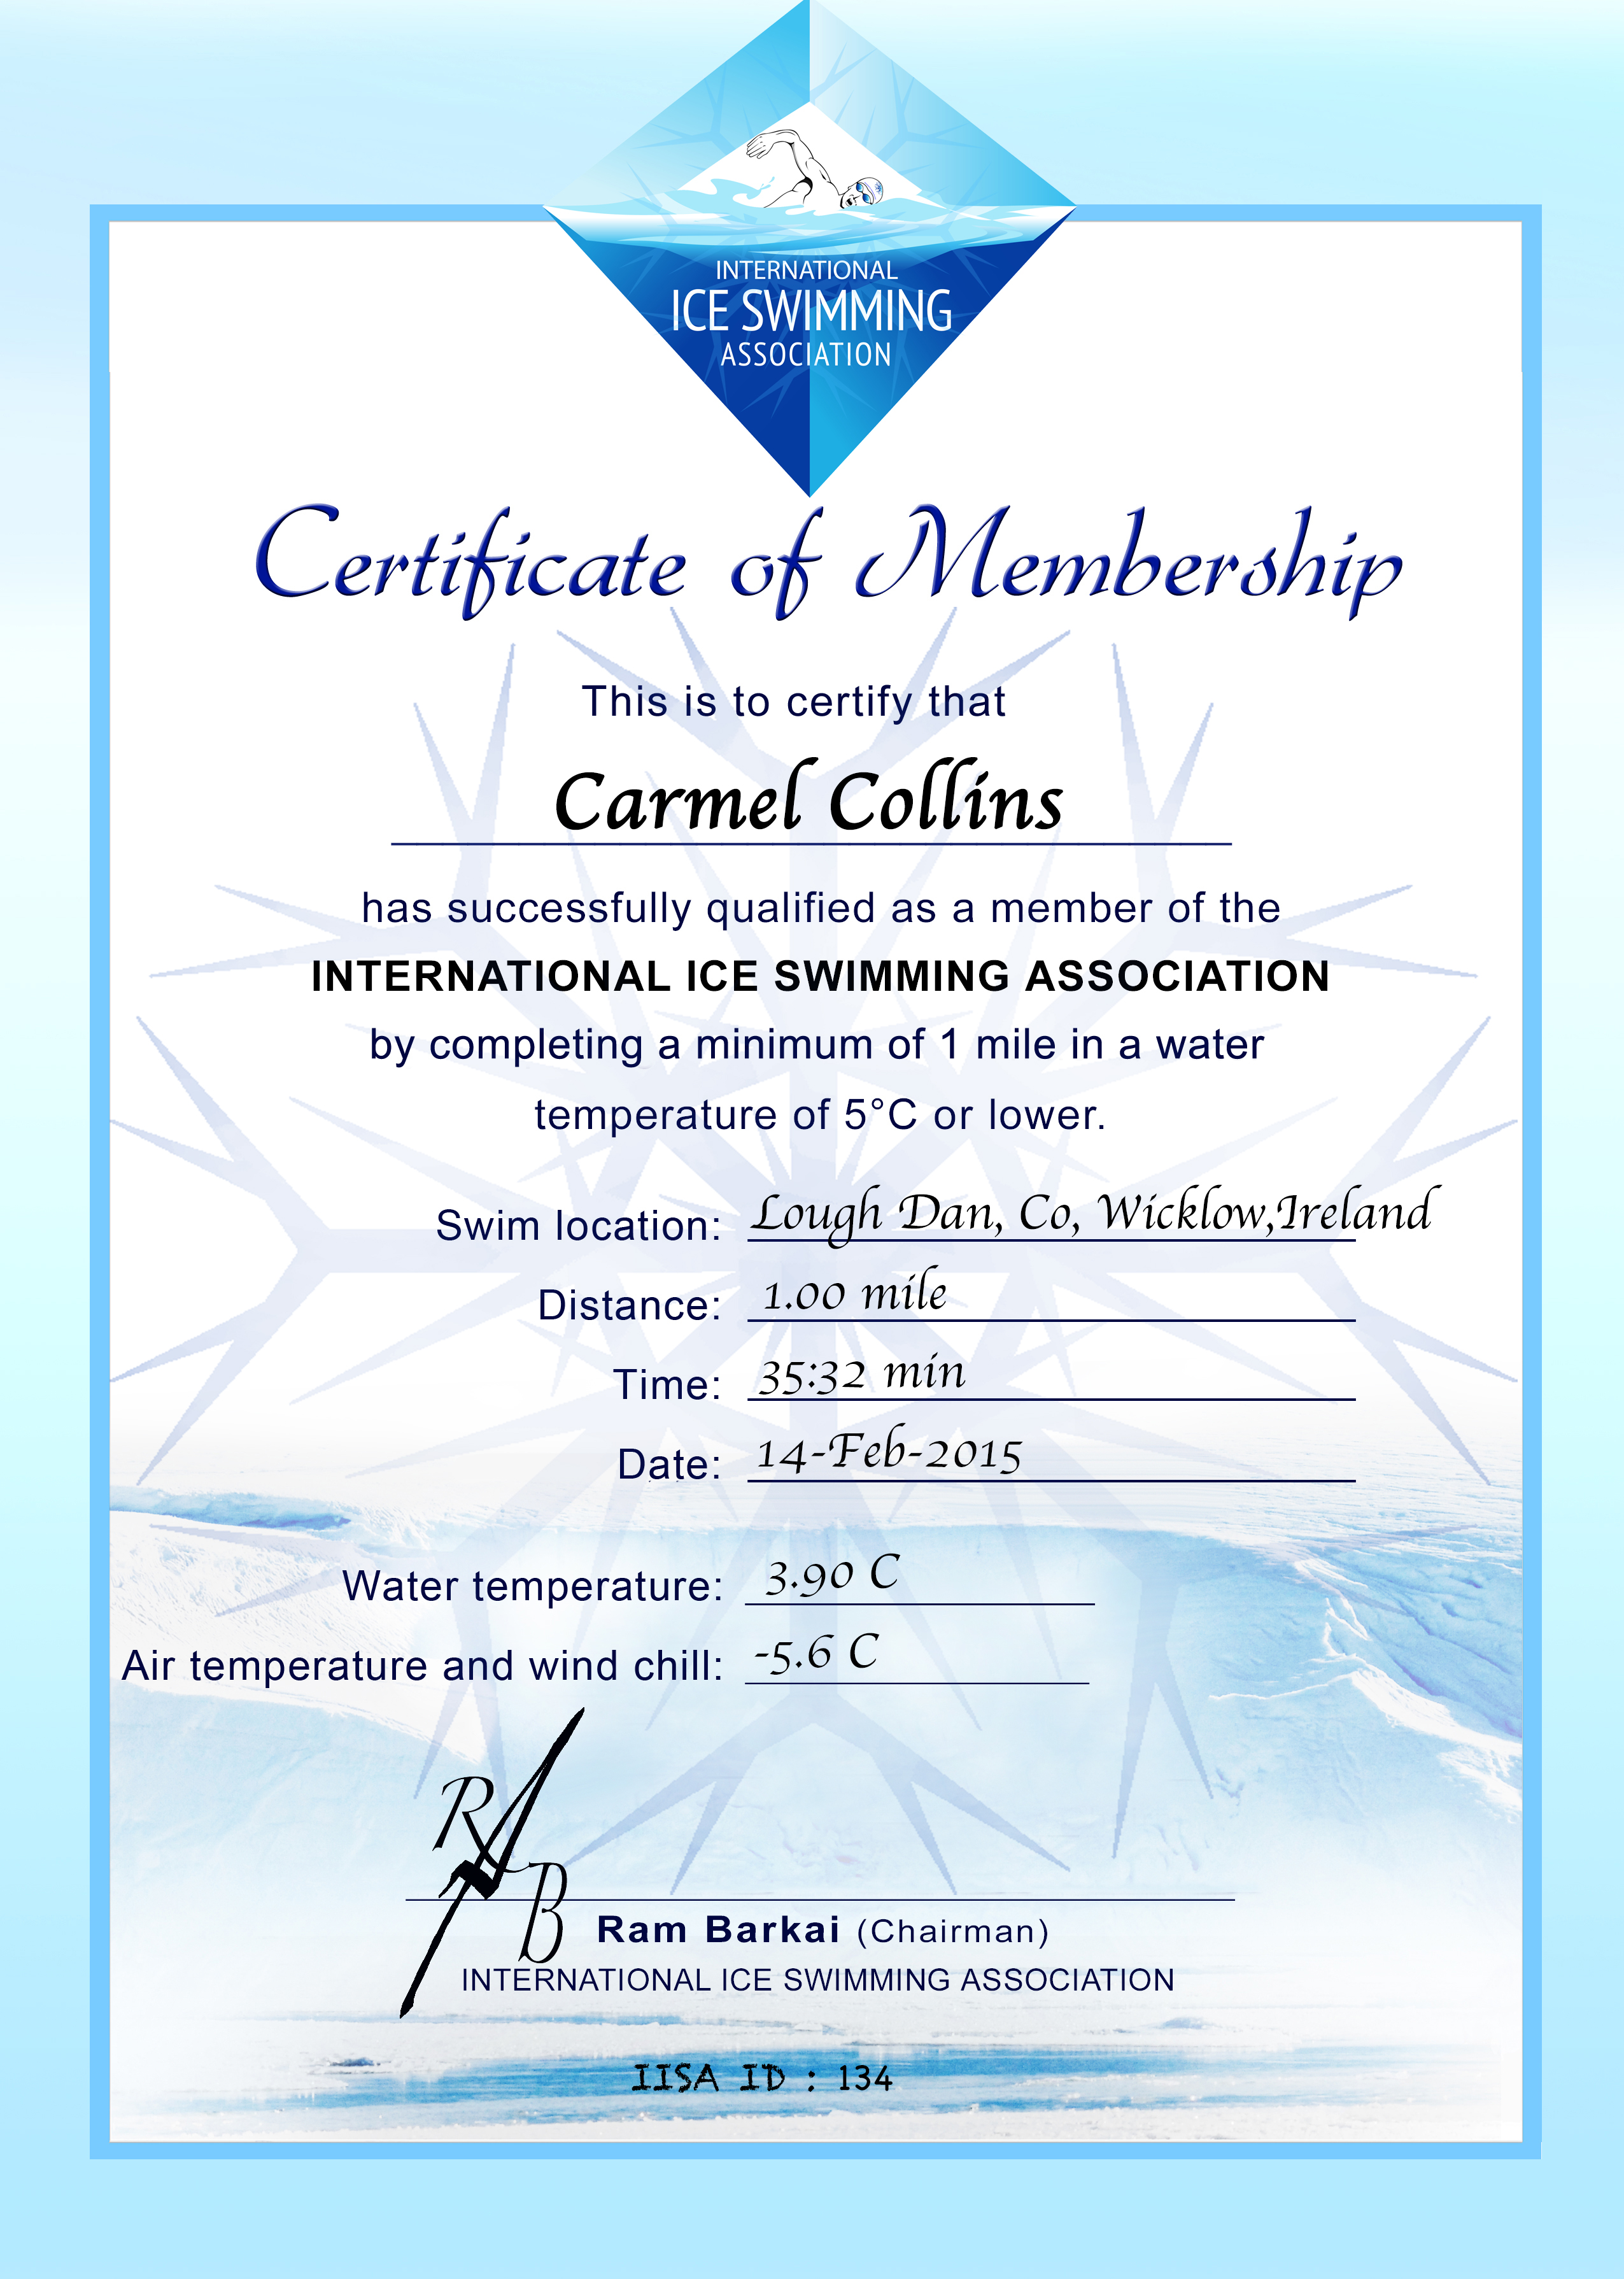 Ice Mile Certificate - Carmel Collins